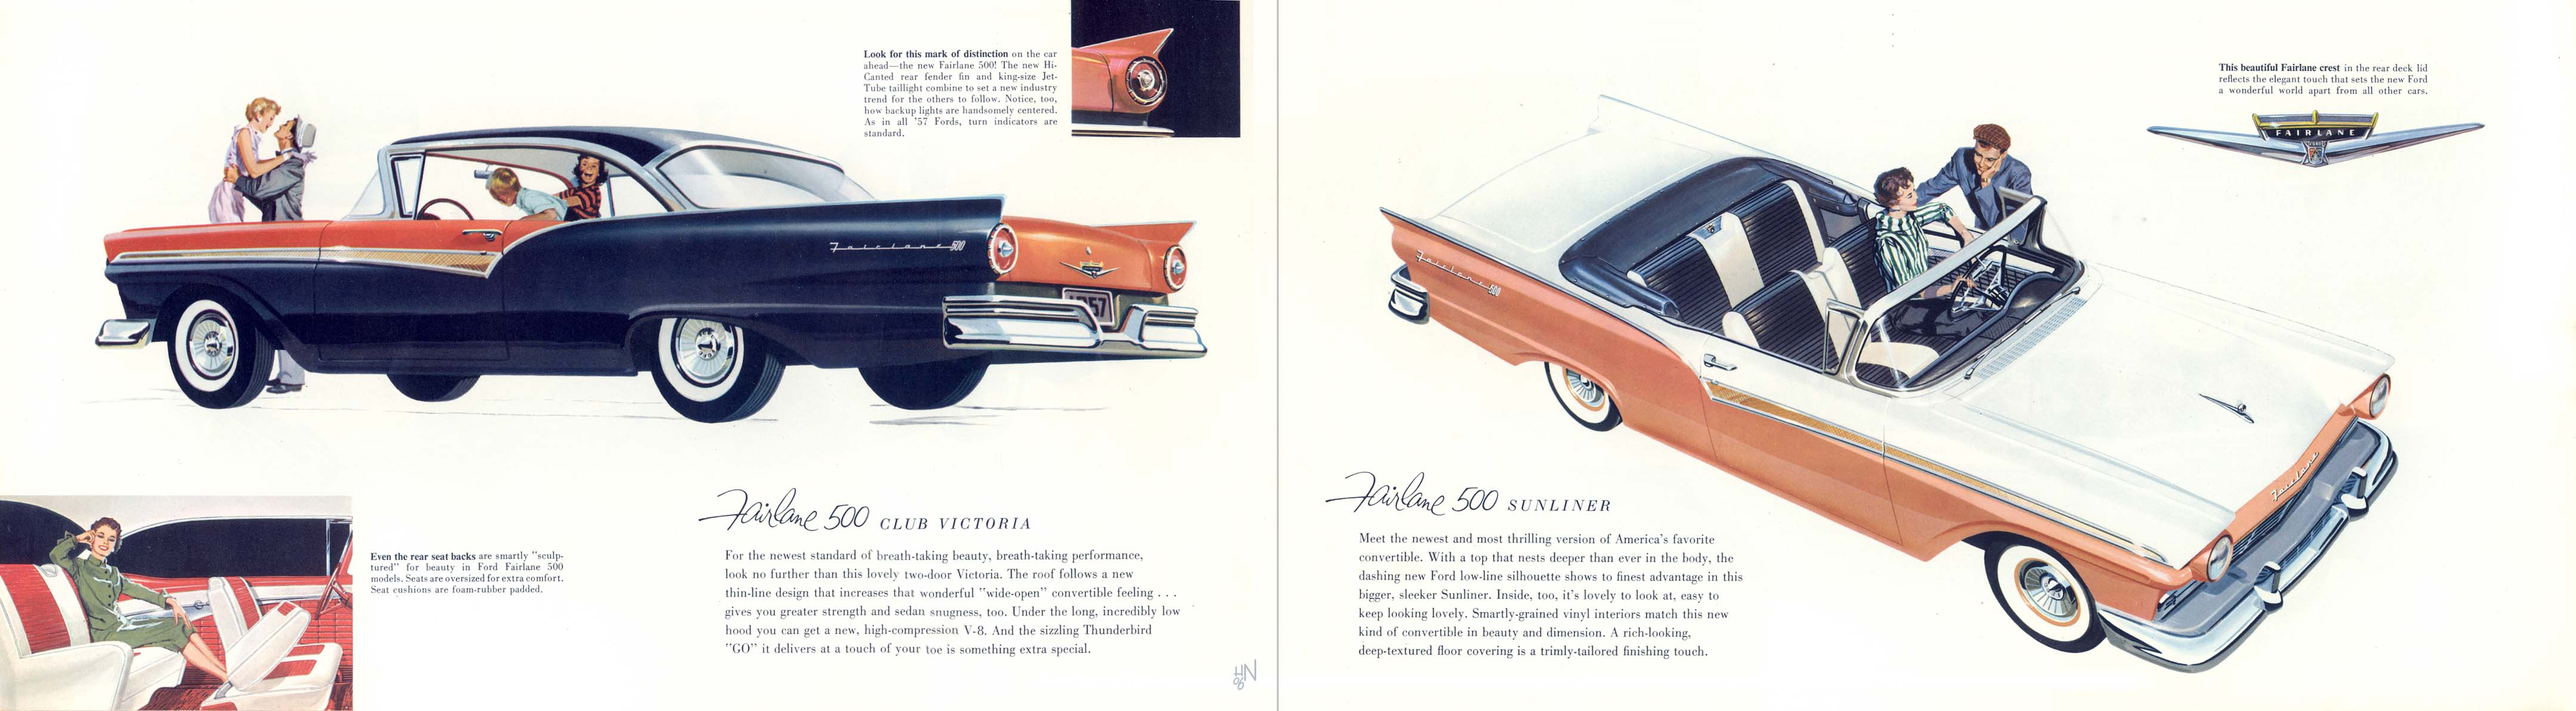 Wonderful 1957 Ford Fairlane Michaelieclark Retractable Top Wiring Diagram Full Size Image